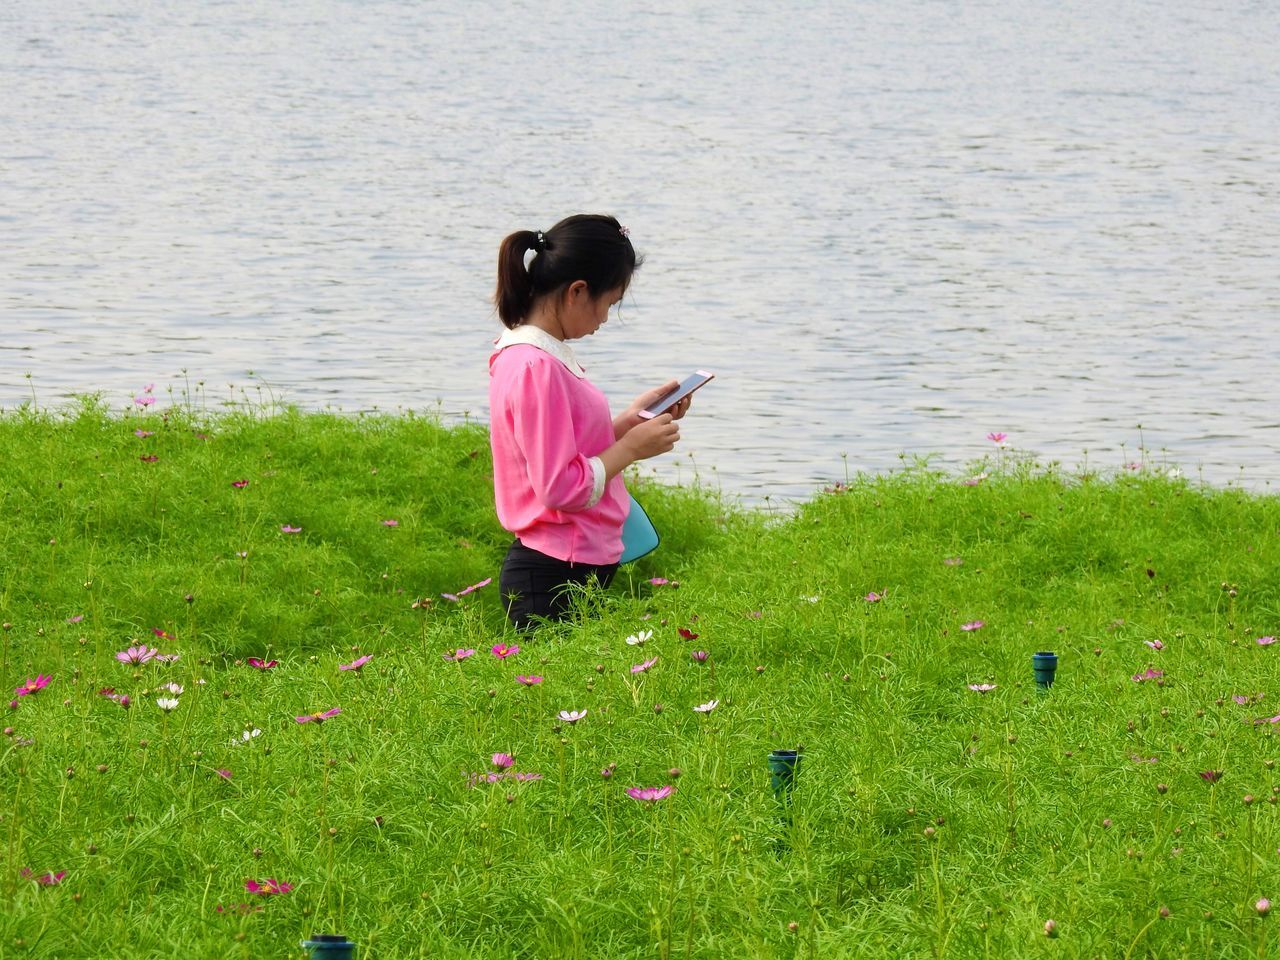 Wireless Technology Technology Grass Communication Digital Tablet Water One Person Lake Holding Nature One Girl Only Childhood Learning Girls Outdoors Day Sitting Child People Children Only